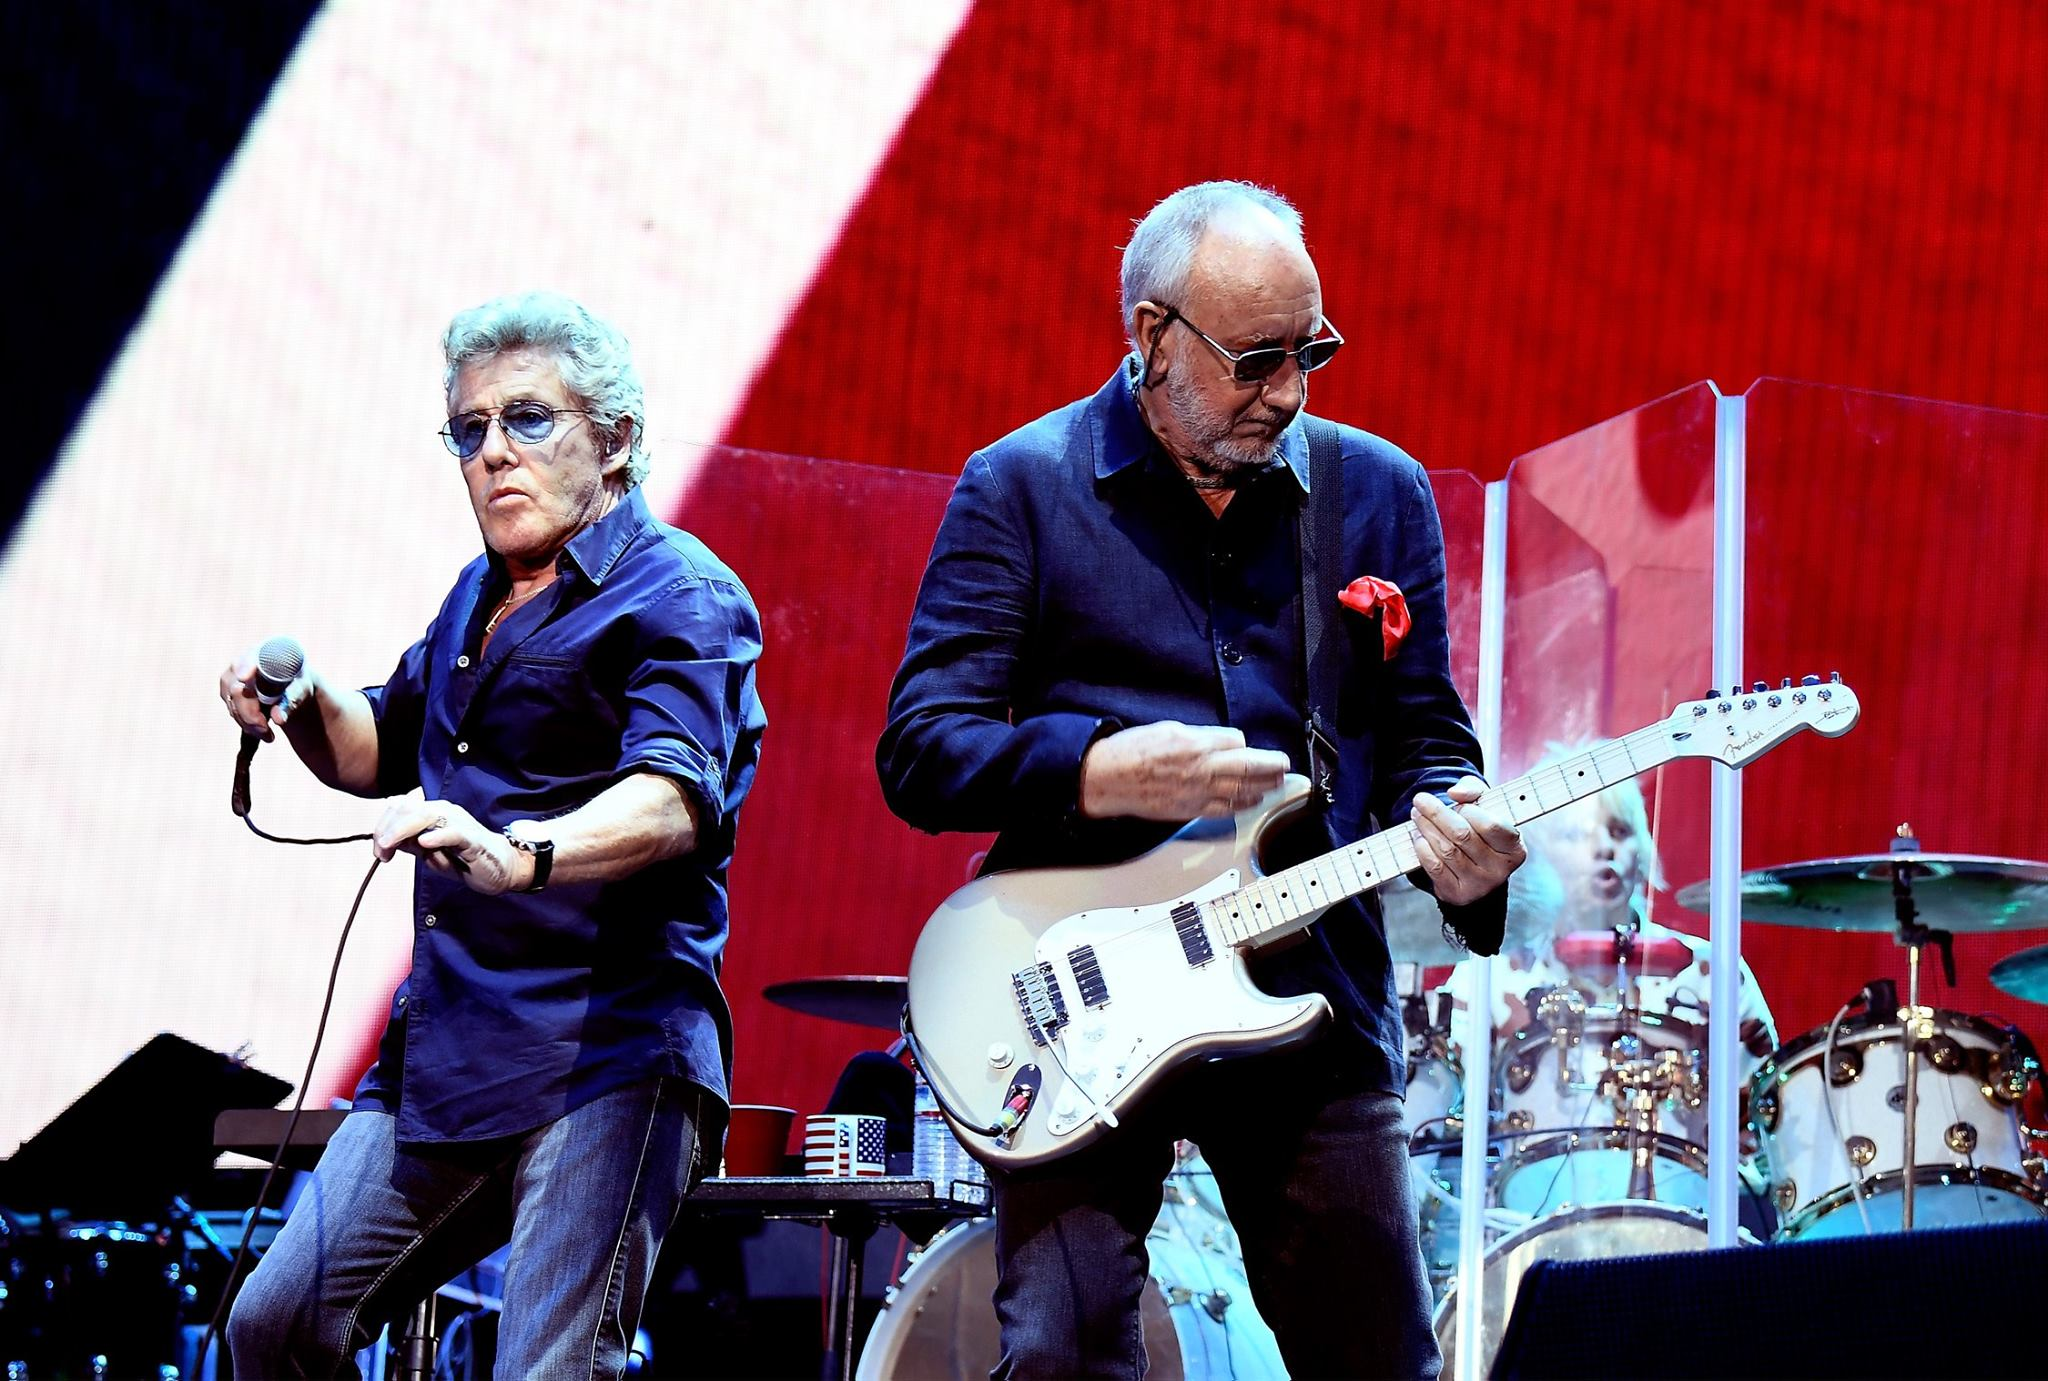 Roger Daltrey and Pete Townshend performing at Desert Trip on October 9, 2016. (Uncredited photo via The Who Facebook page)